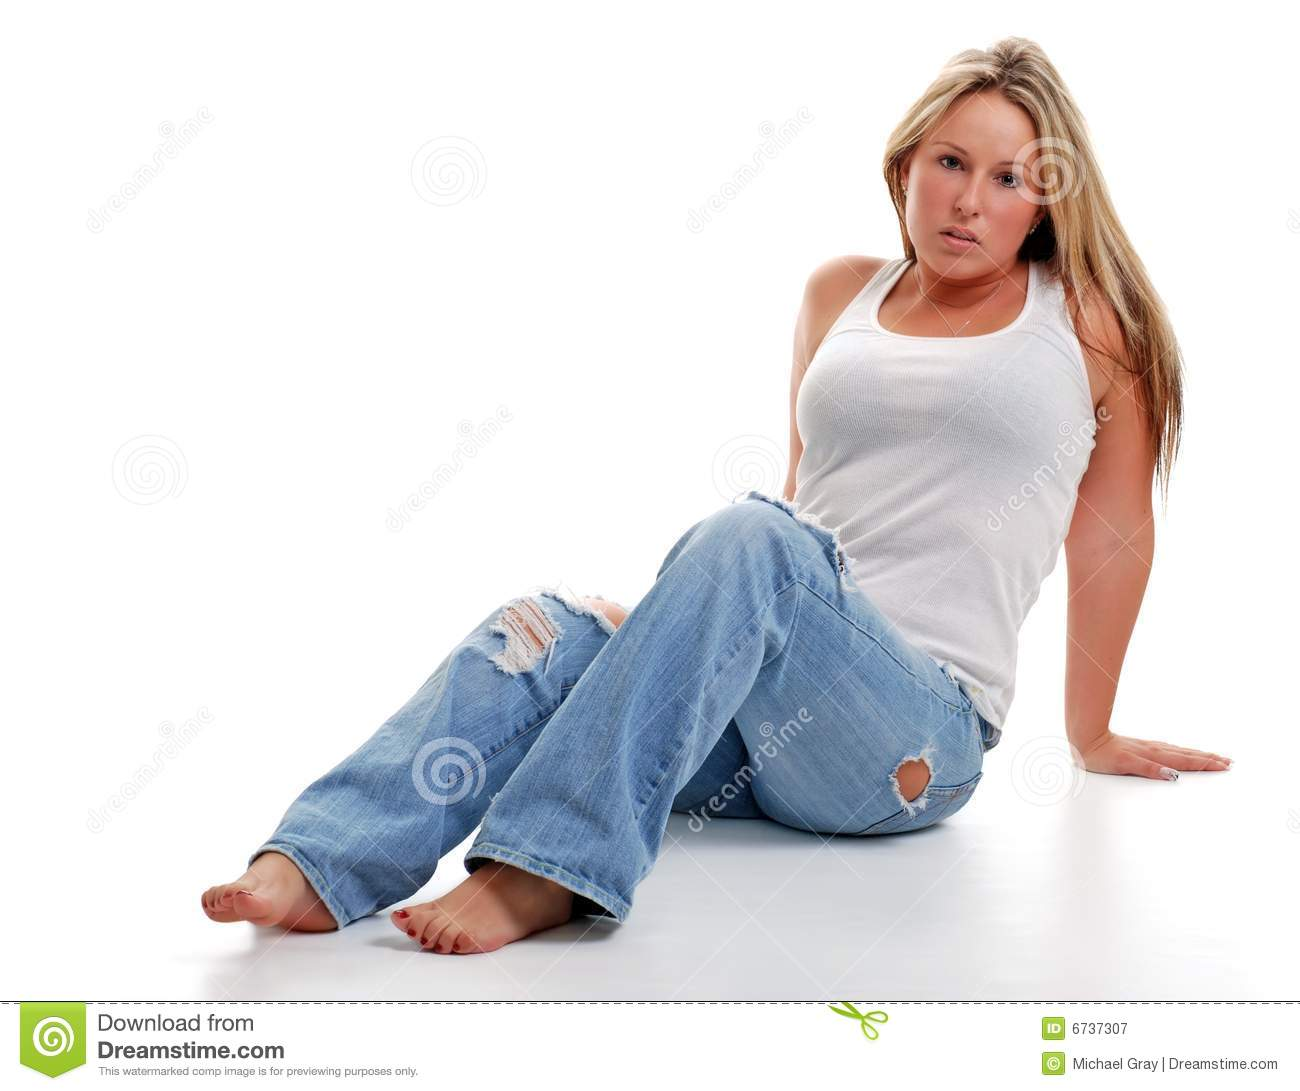 Frauen barfuss in jeans